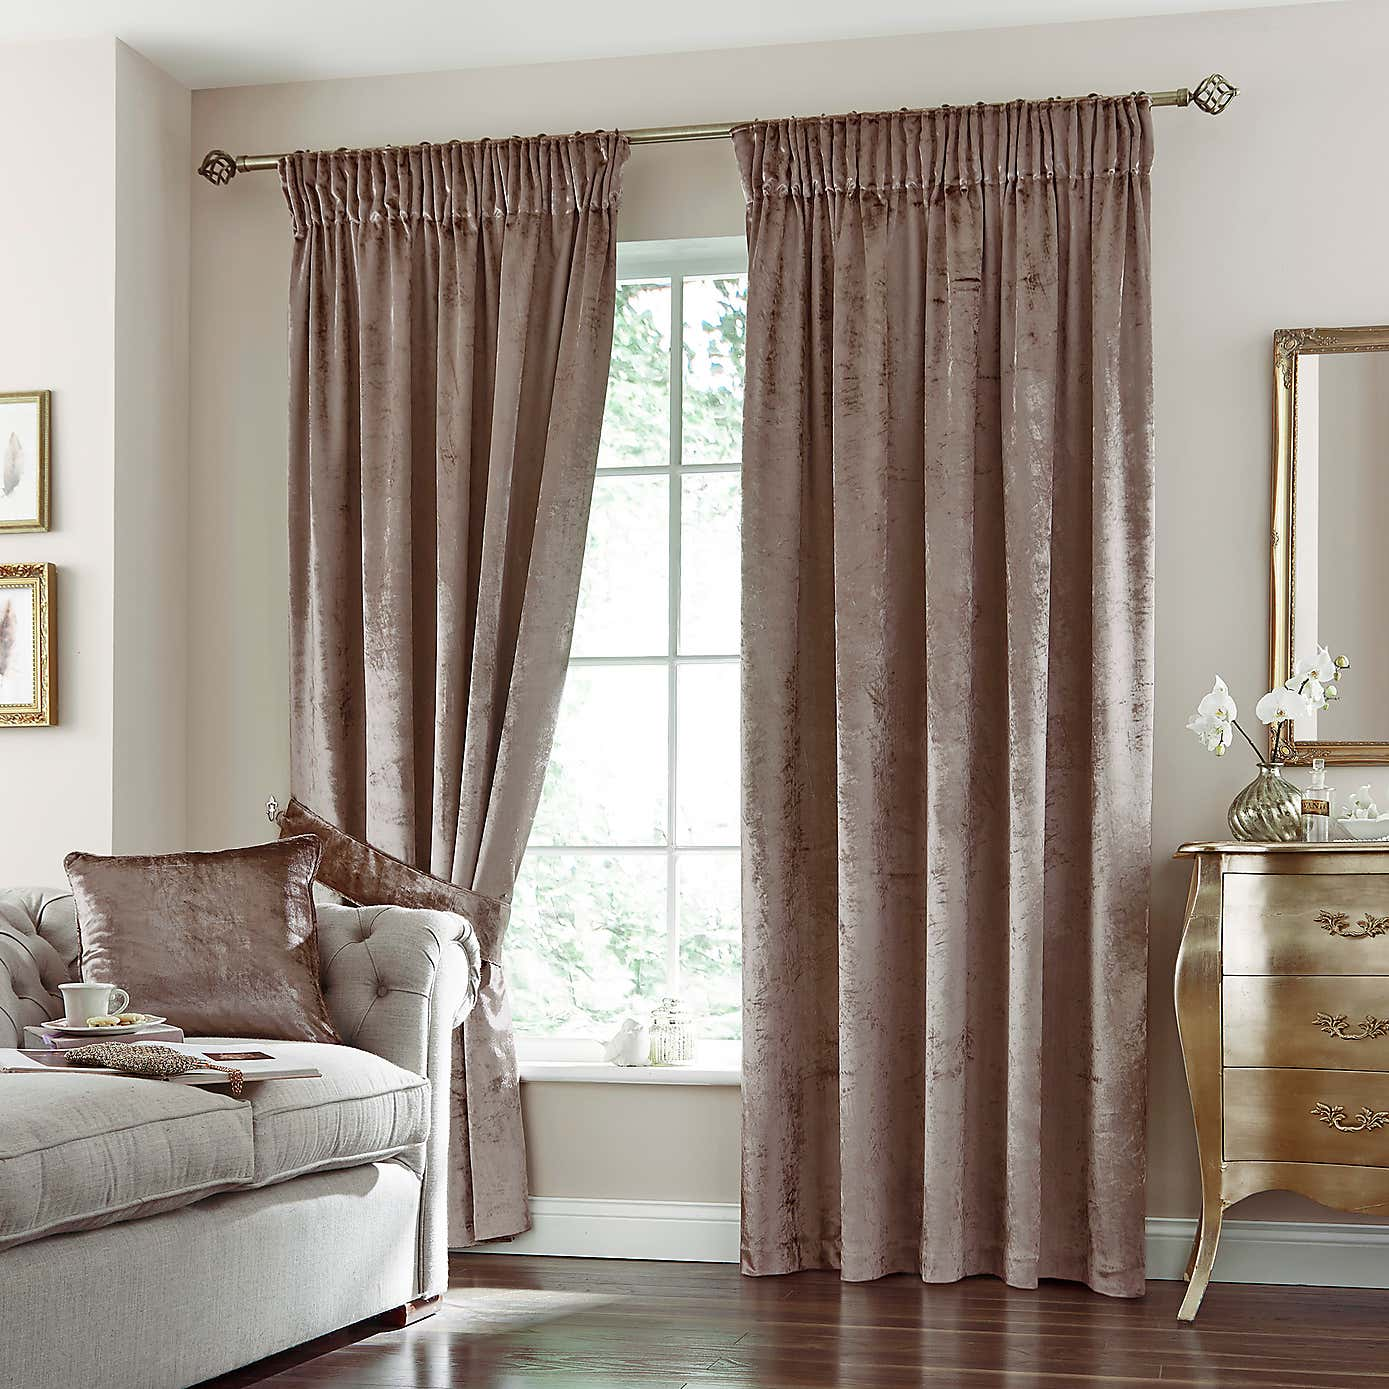 Dunelm Blackout Curtains Pencil Pleat Snakepress Com